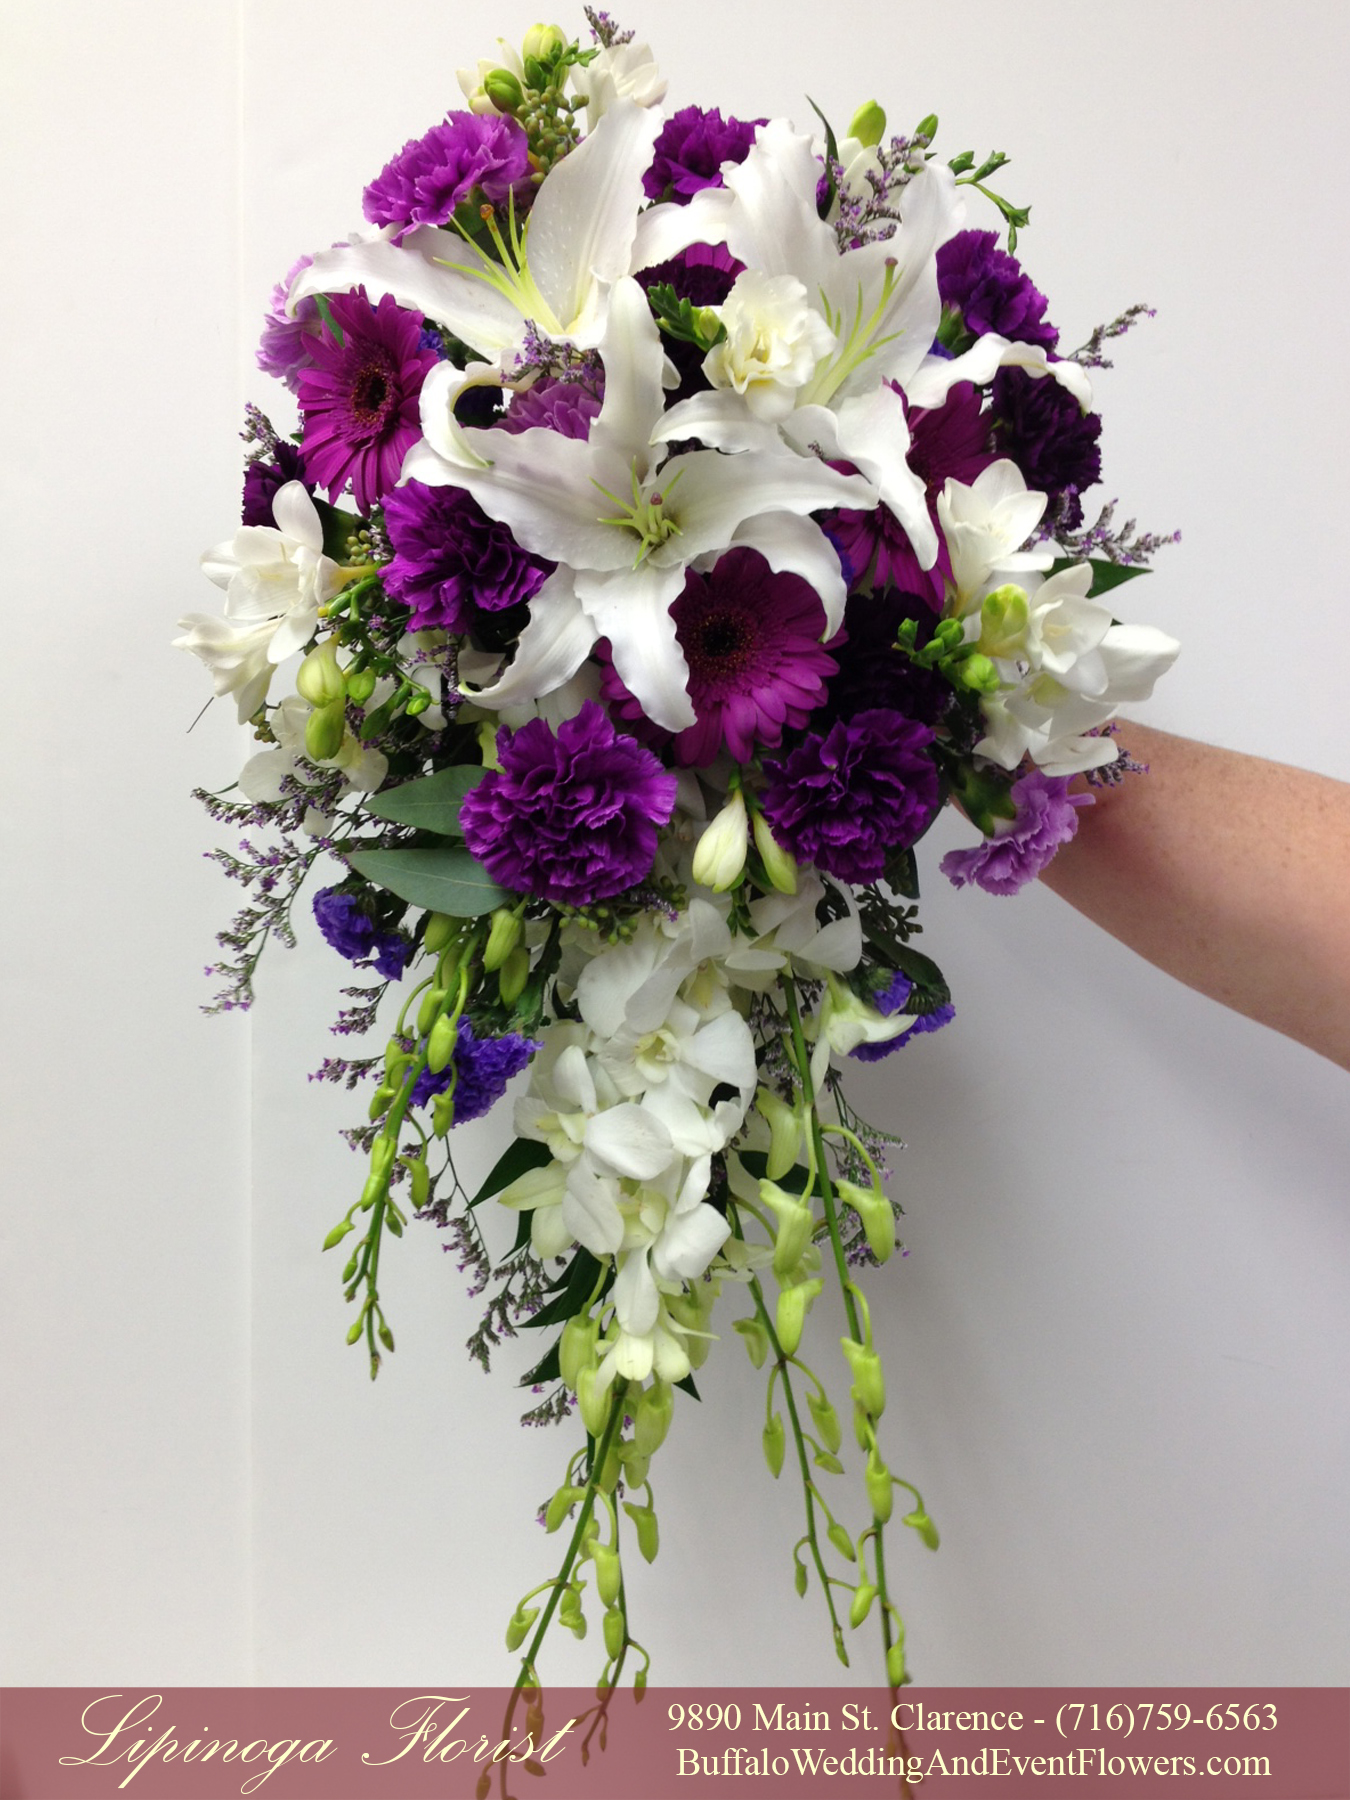 White Lily and Orchid Cascading Bridal Bouquet |Lily Bridal Bouquets